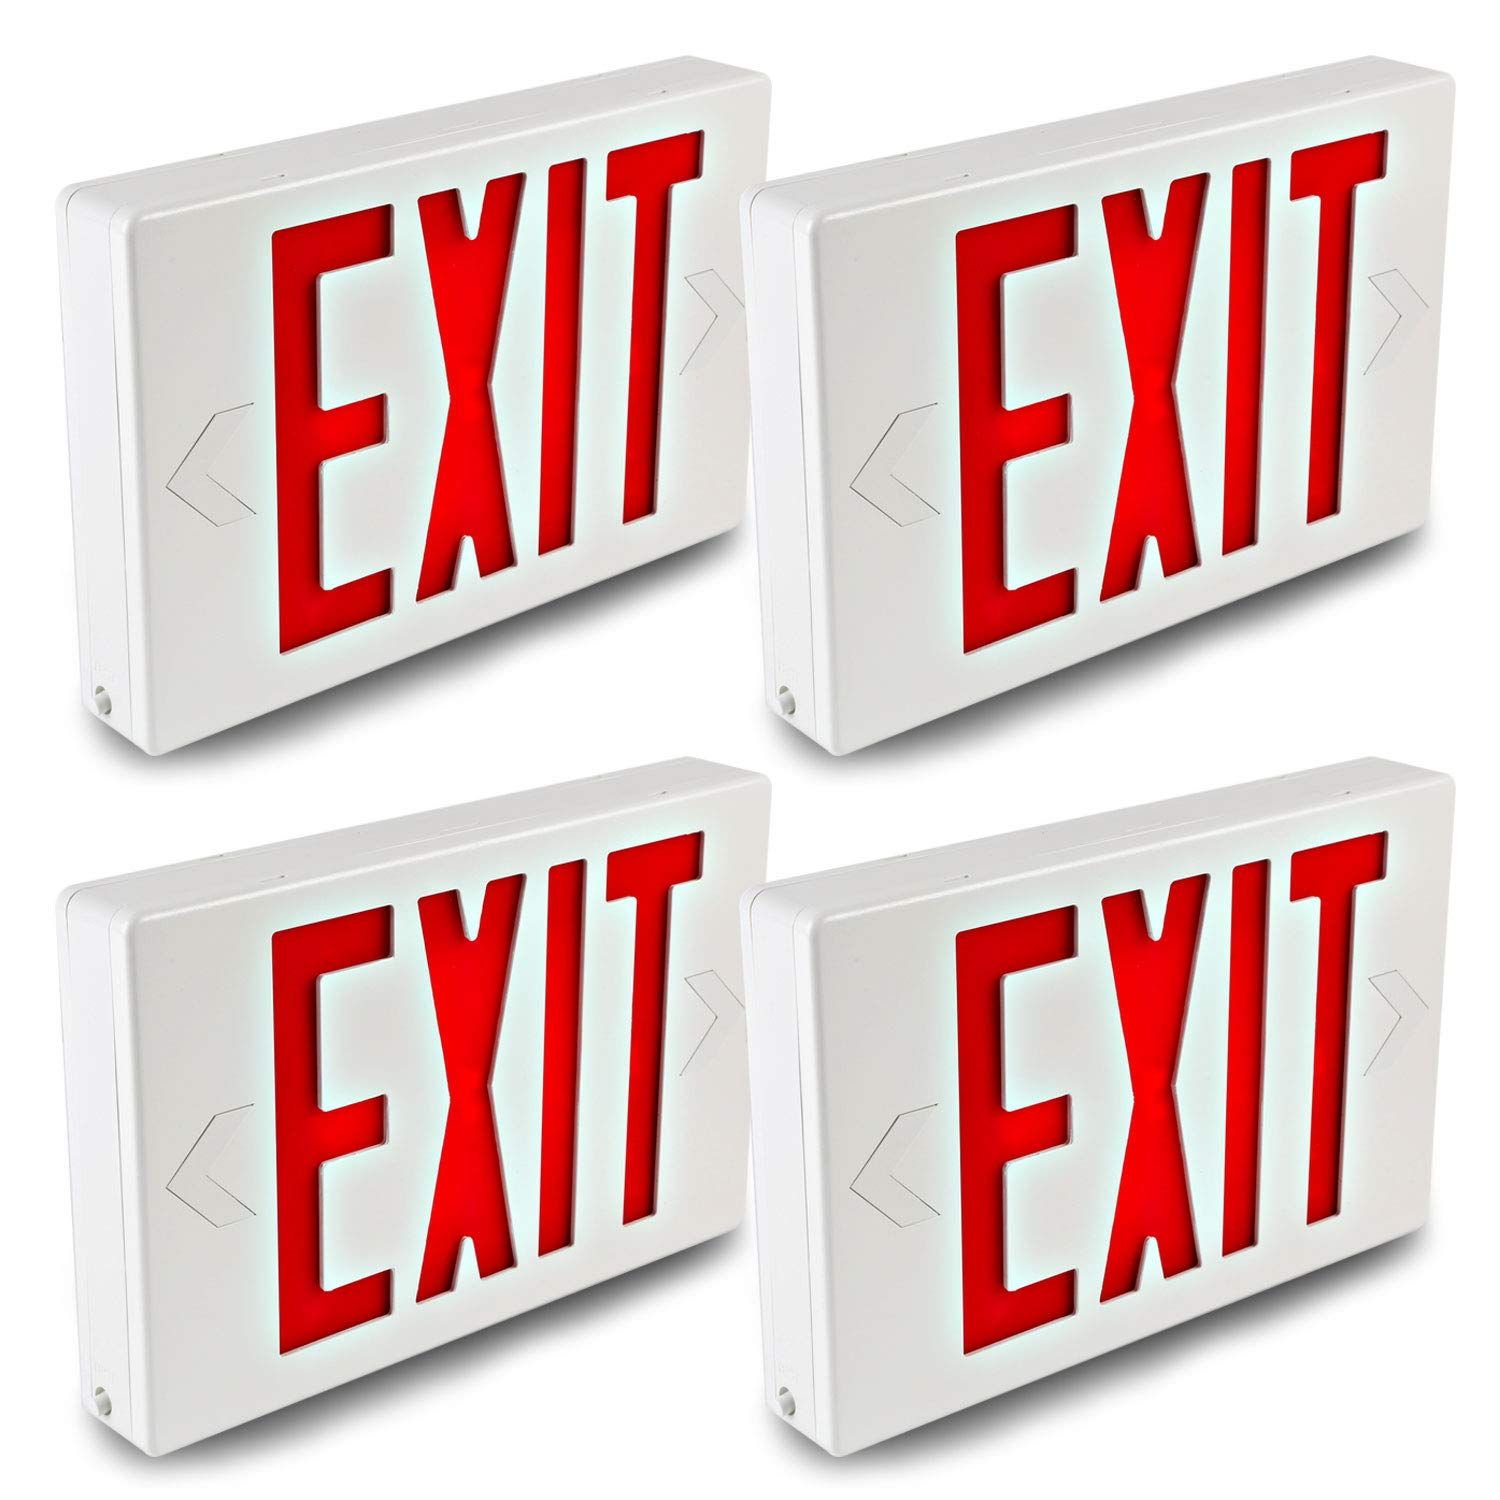 Hykolity Led Exit Sign Emergency Light Lighting Universal Mounting Double Face Red Letter With Battery Backup 4 Pack Check In 2020 Exit Sign Lettering Emergency